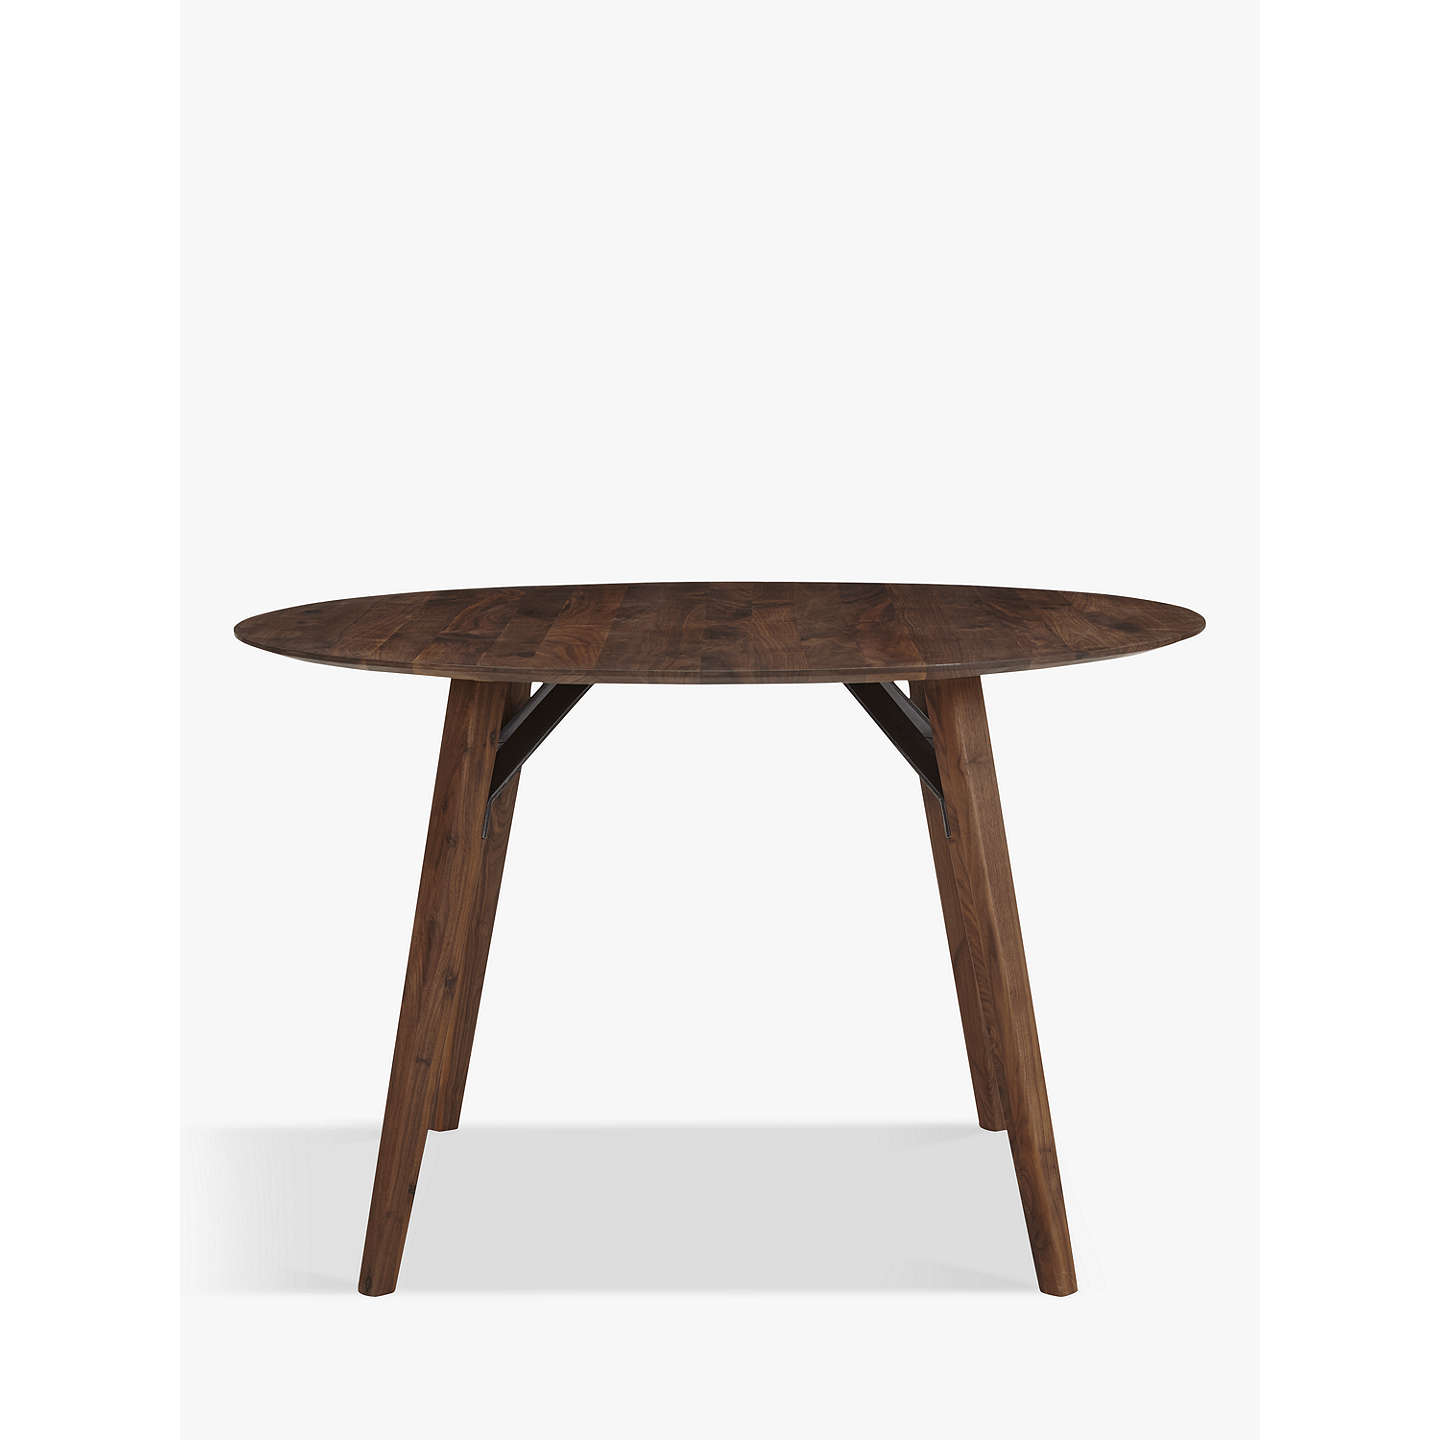 Design project by john lewis dining table at john lewis for John lewis design service